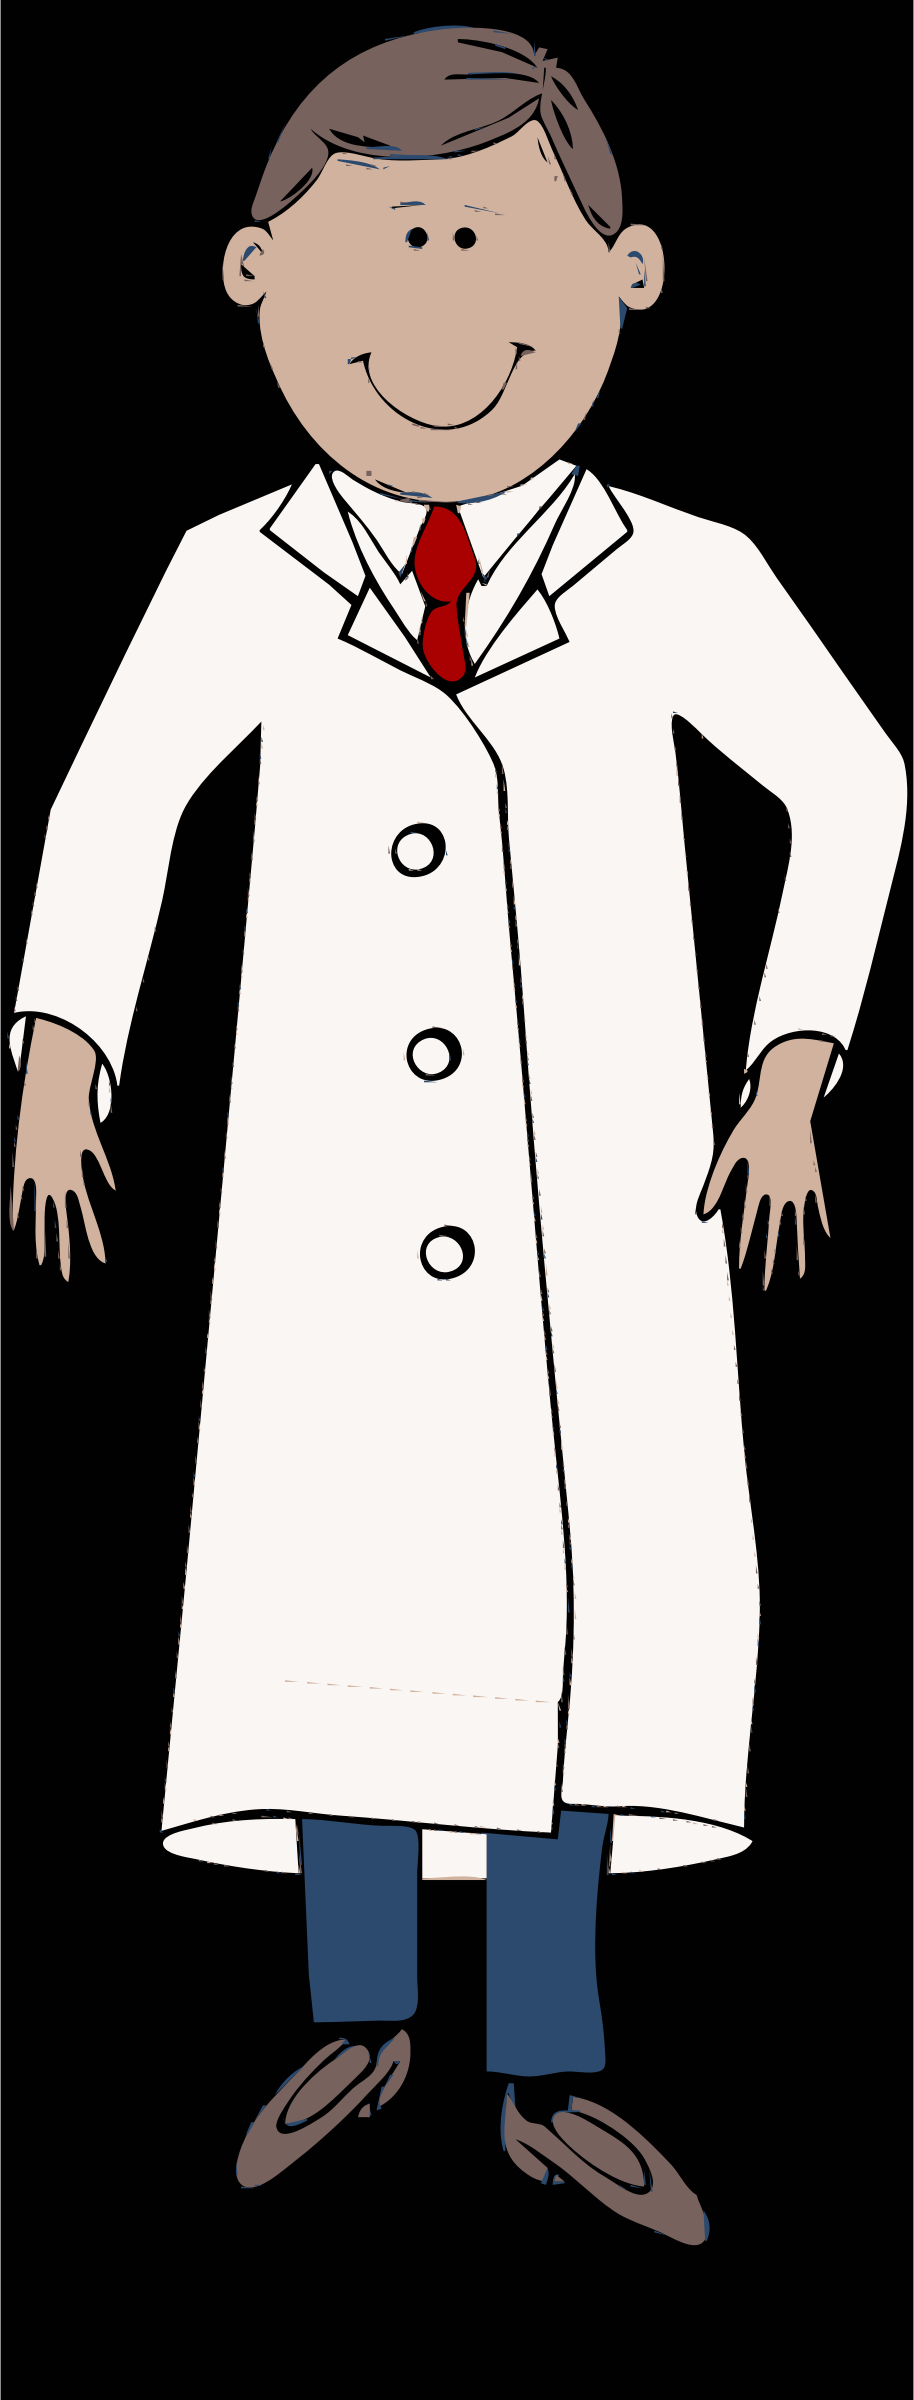 lab coat worn by scientist with red tie by barnheartowl